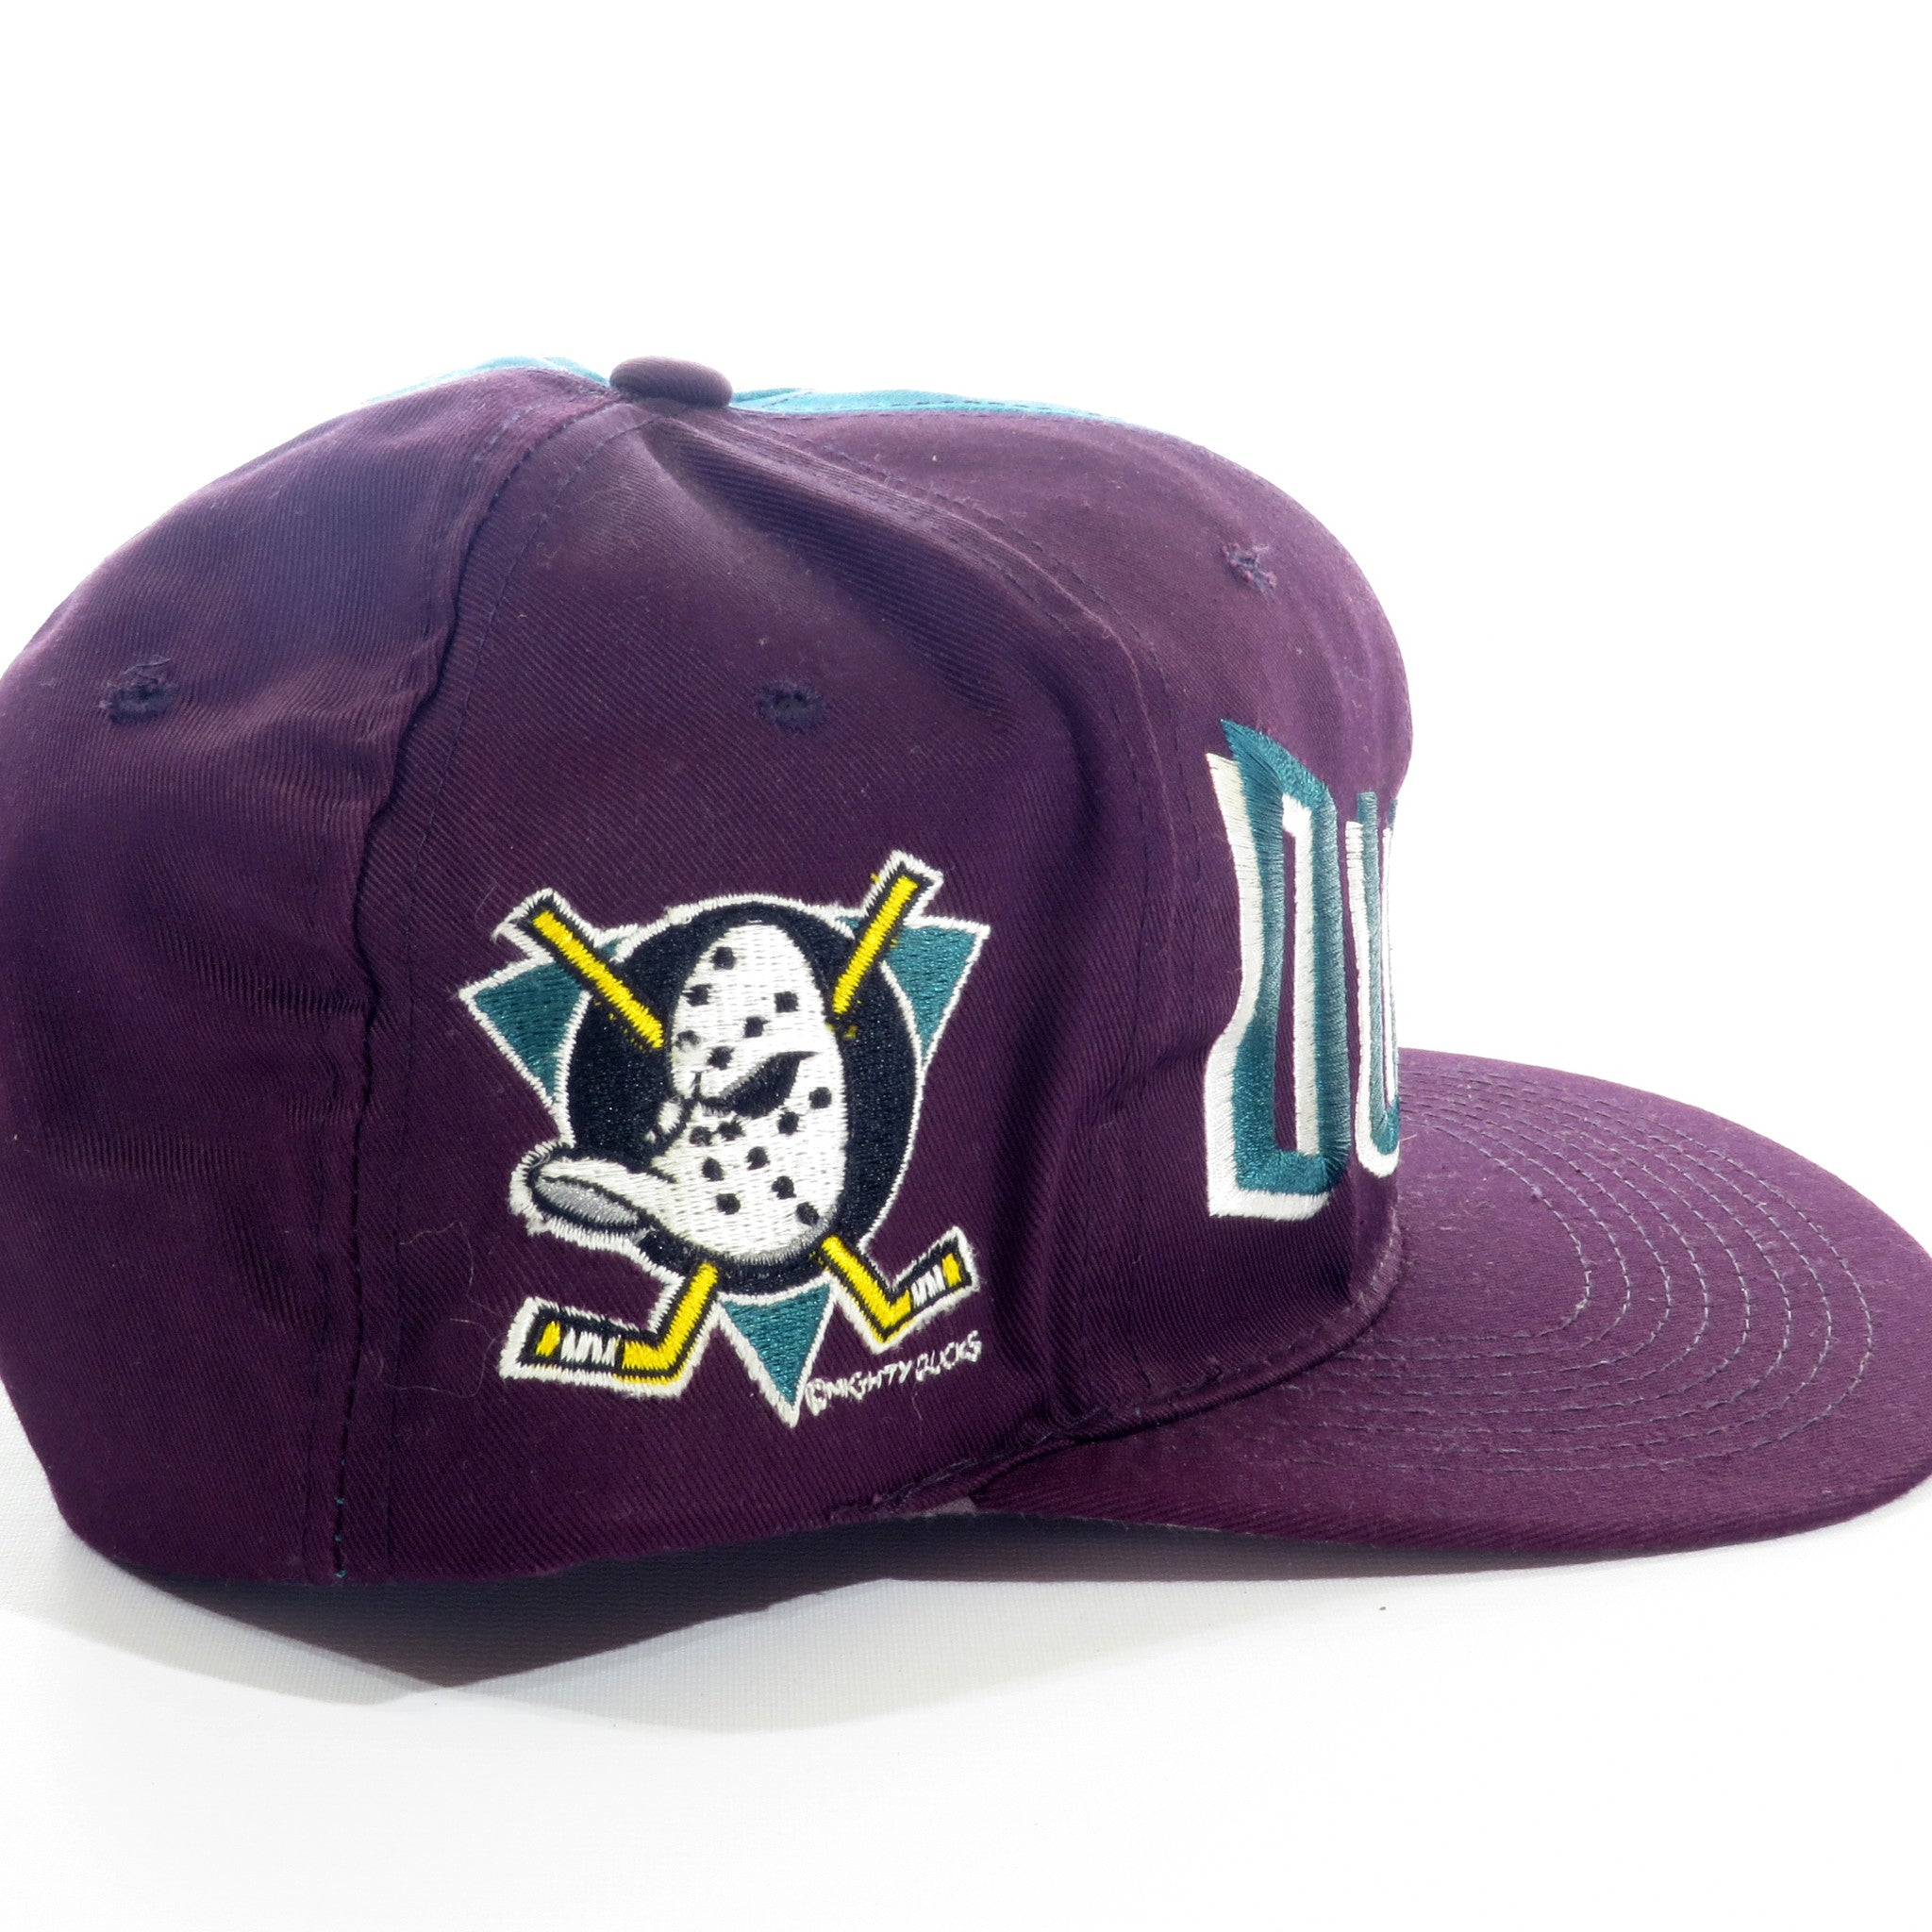 Anaheim Mighty Ducks Snapback Hat